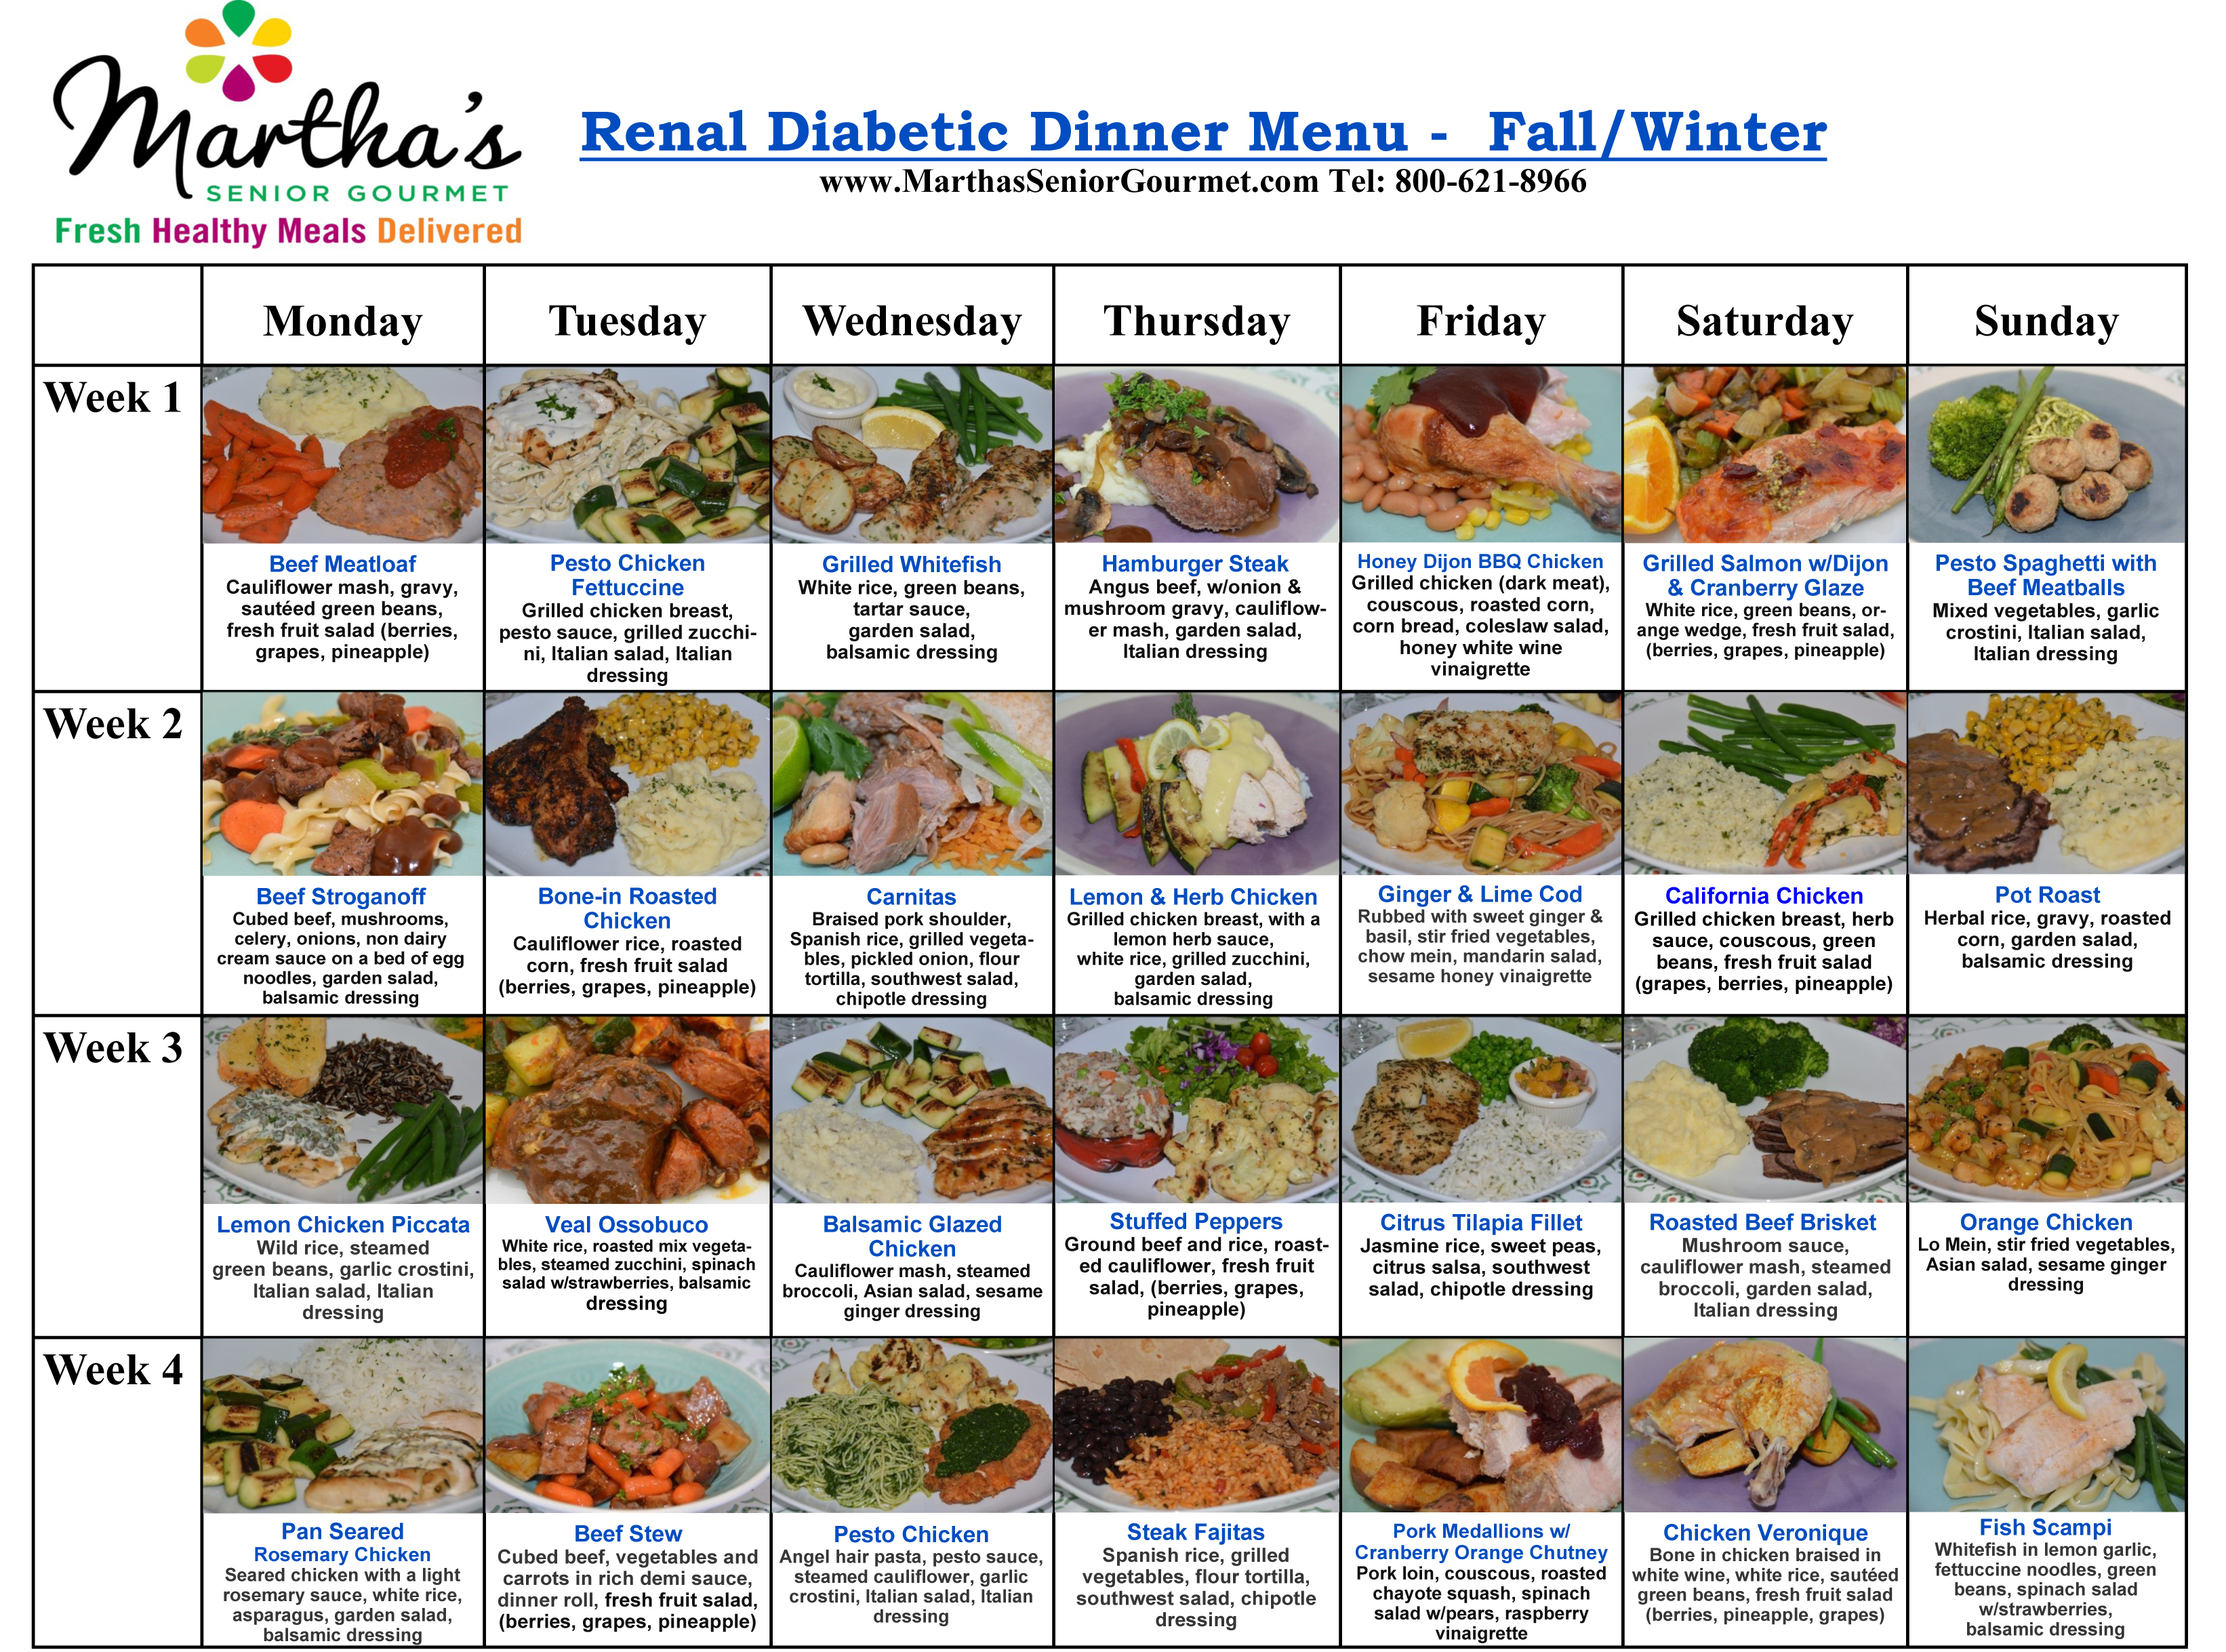 Martha's Senior Gourmet Renal Diabetic Dinner Menu - Fall/Winter